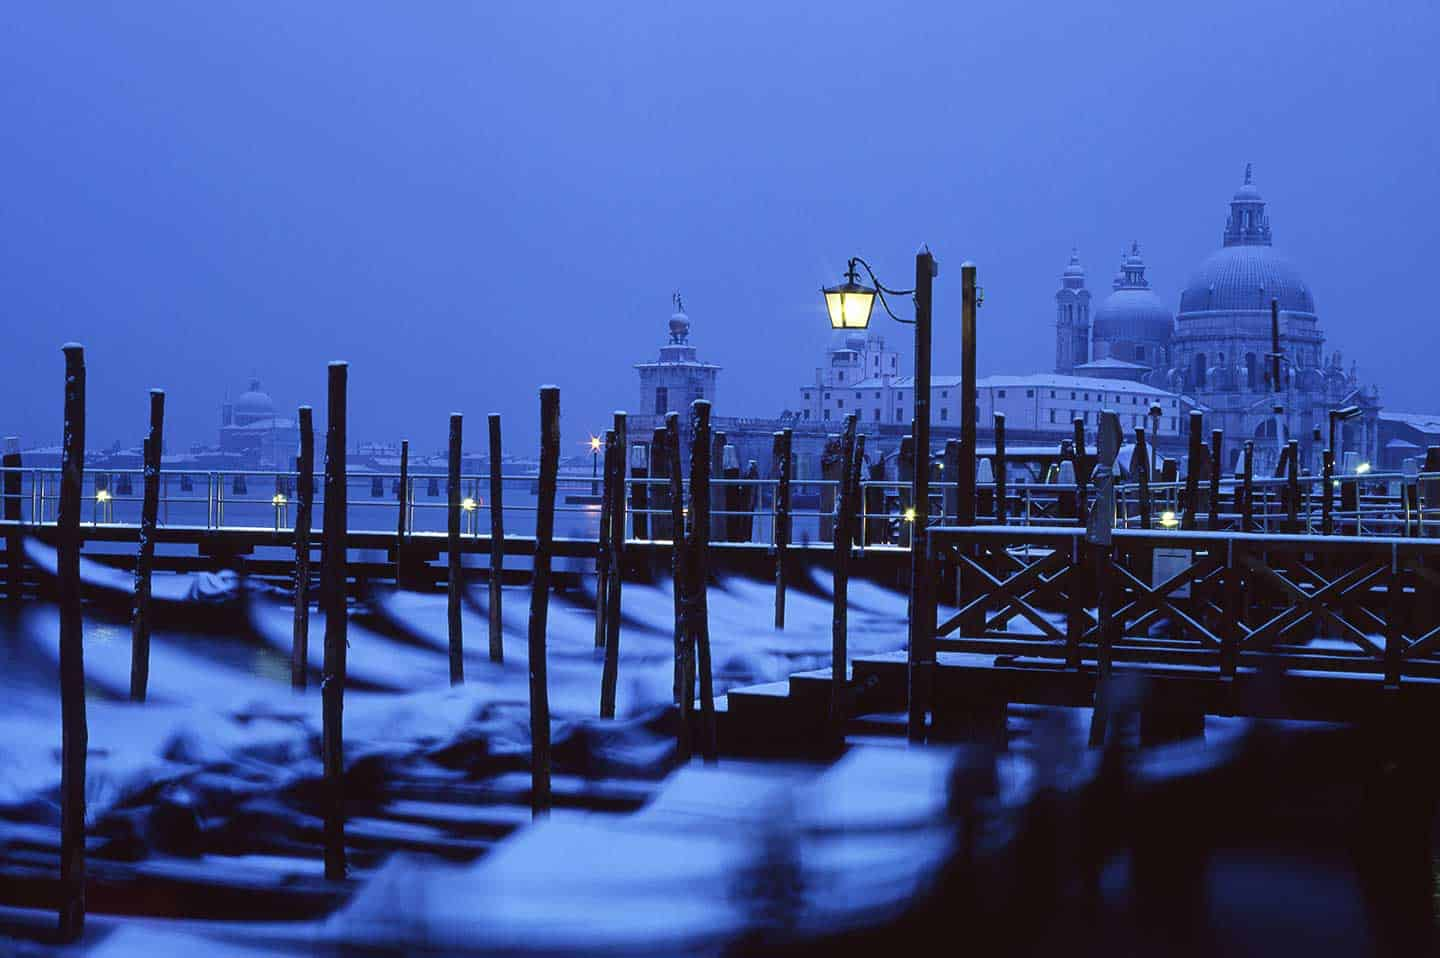 Image of Santa Maria della Salute and gondolas in snow in Venice